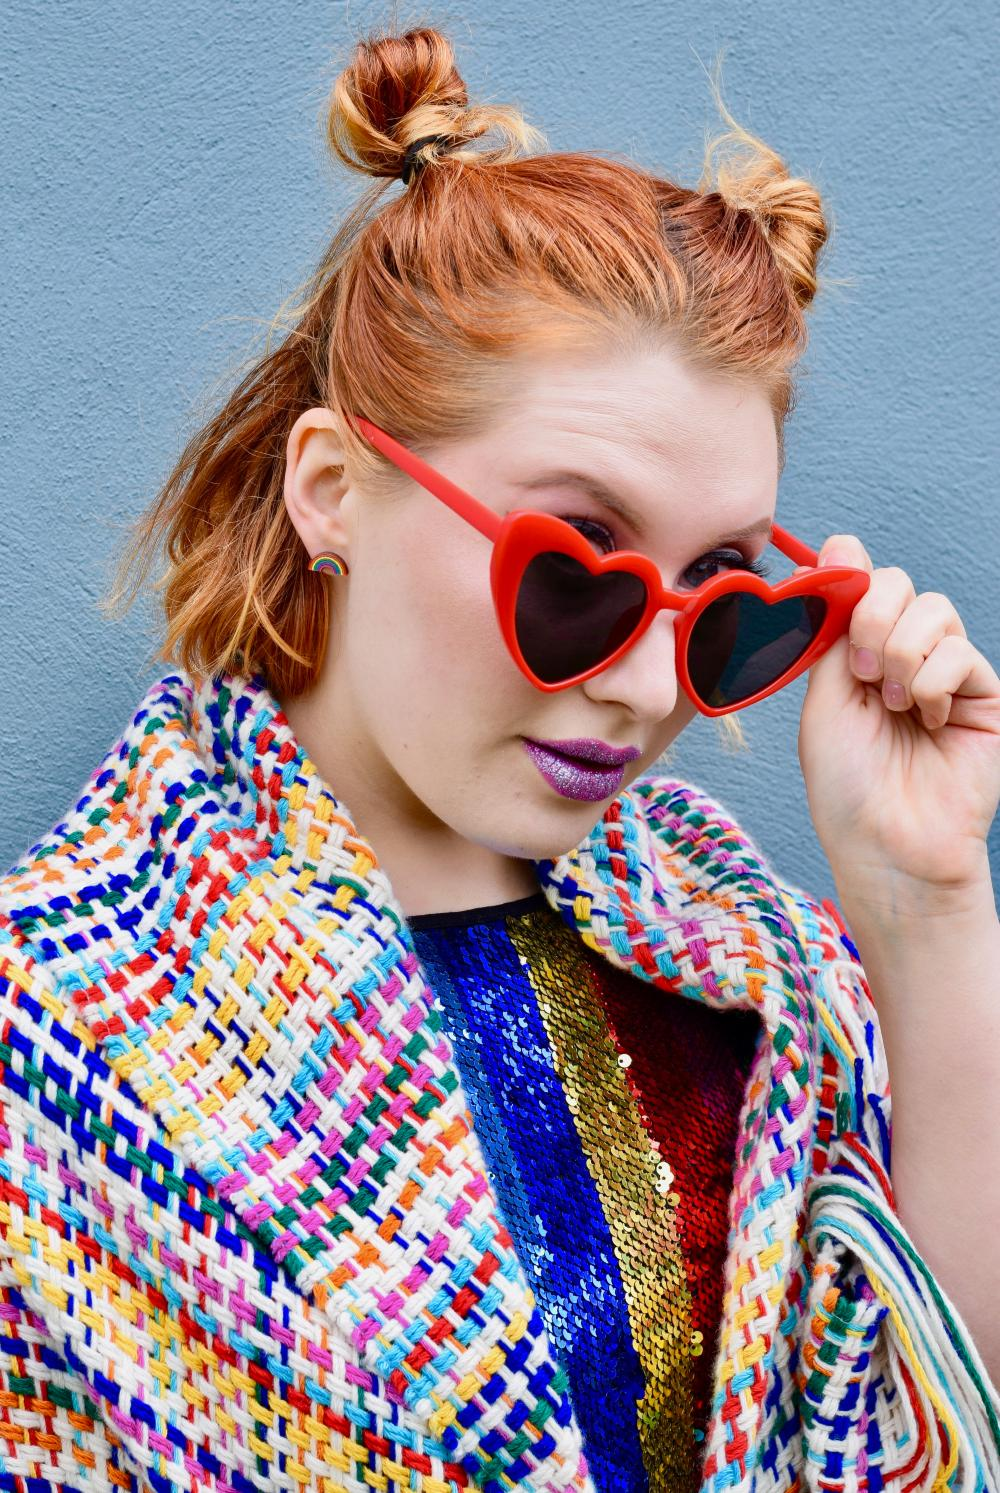 Scottish blogger Styled by Alice wears ethical rainbow fashion ideas for LGBT Pride